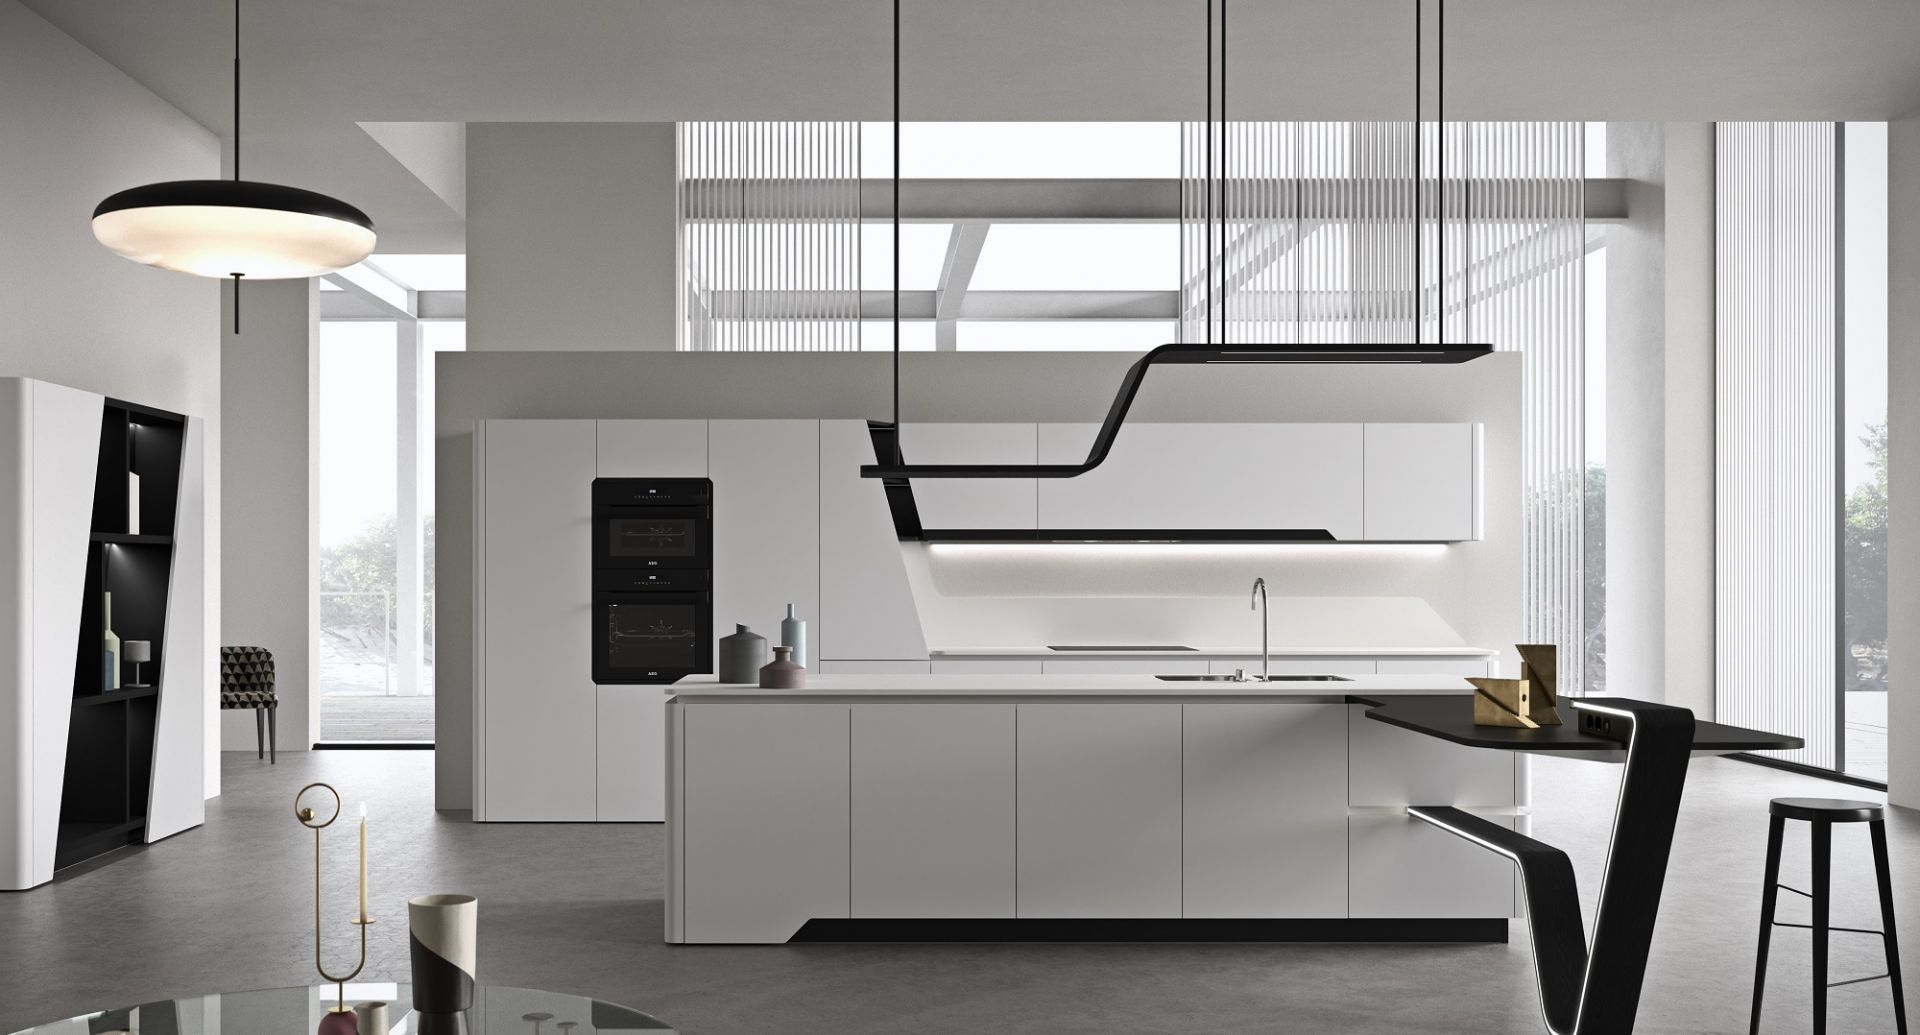 Snaidero luxury kitchens with island - Vision - picture 1